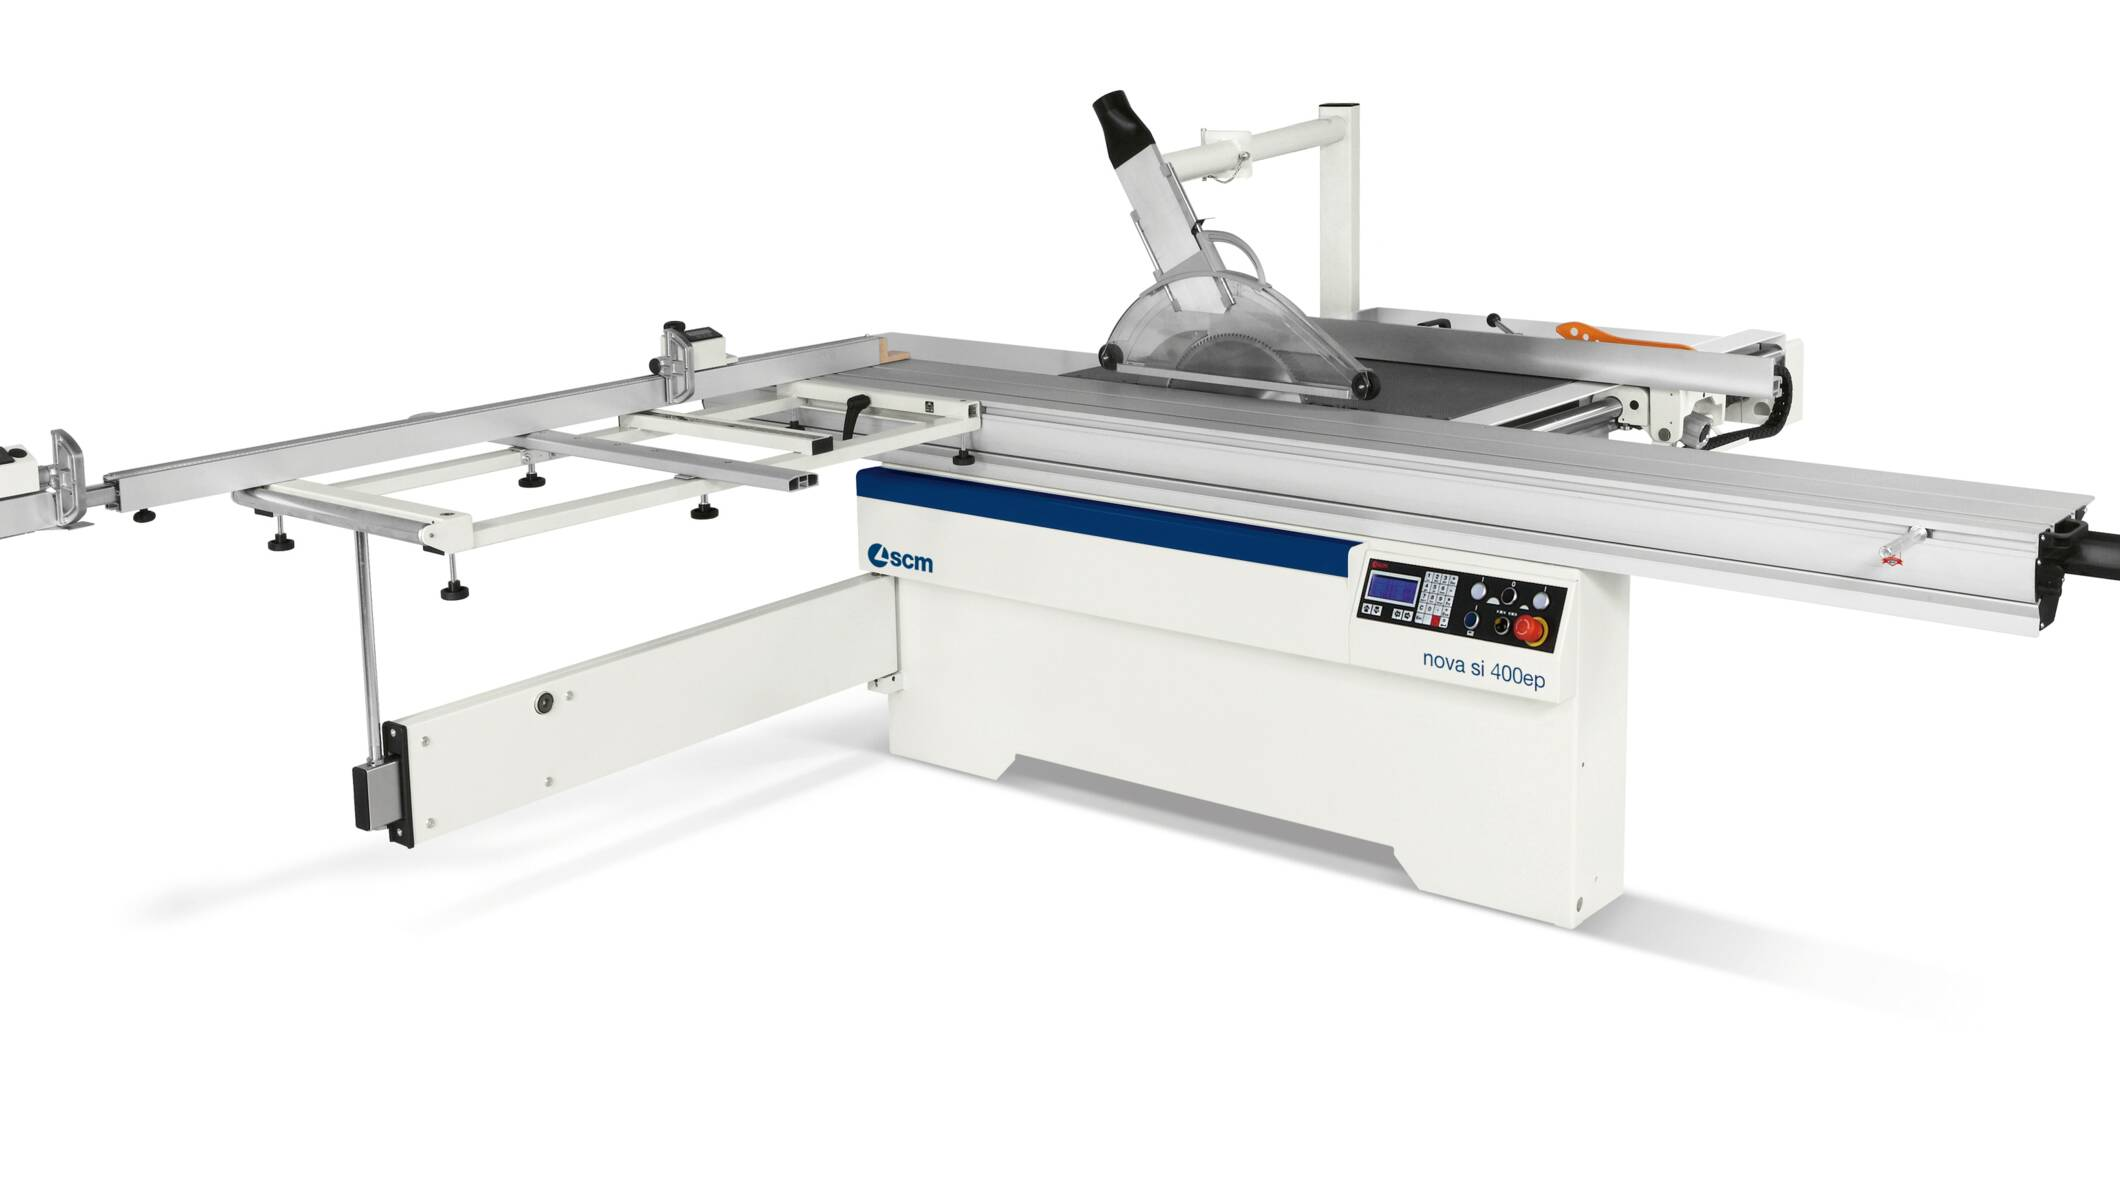 Joinery machines - Sliding table saws - nova si 400ep